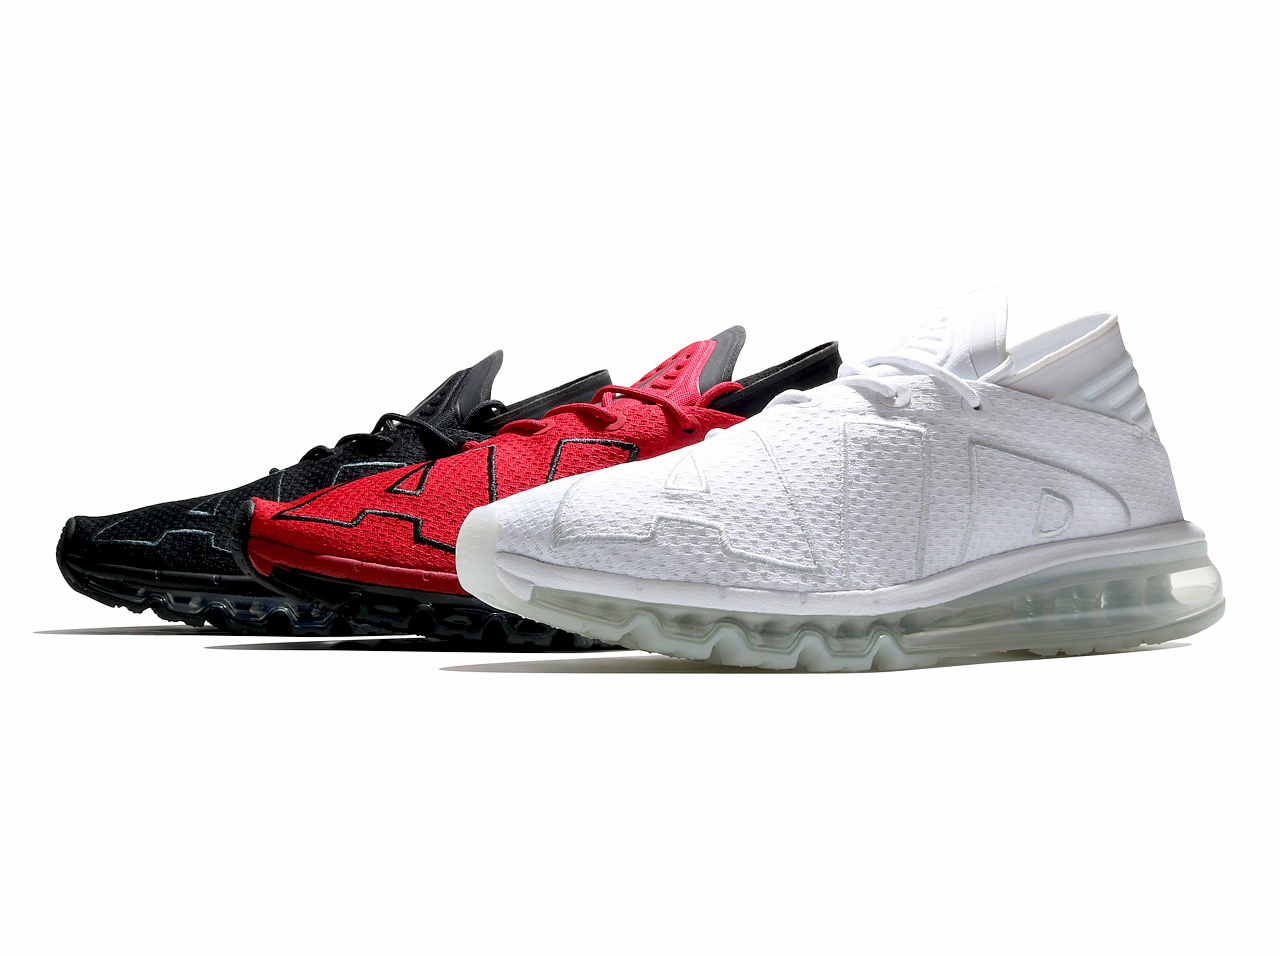 nike_airmax_flair_942236_002_100_600